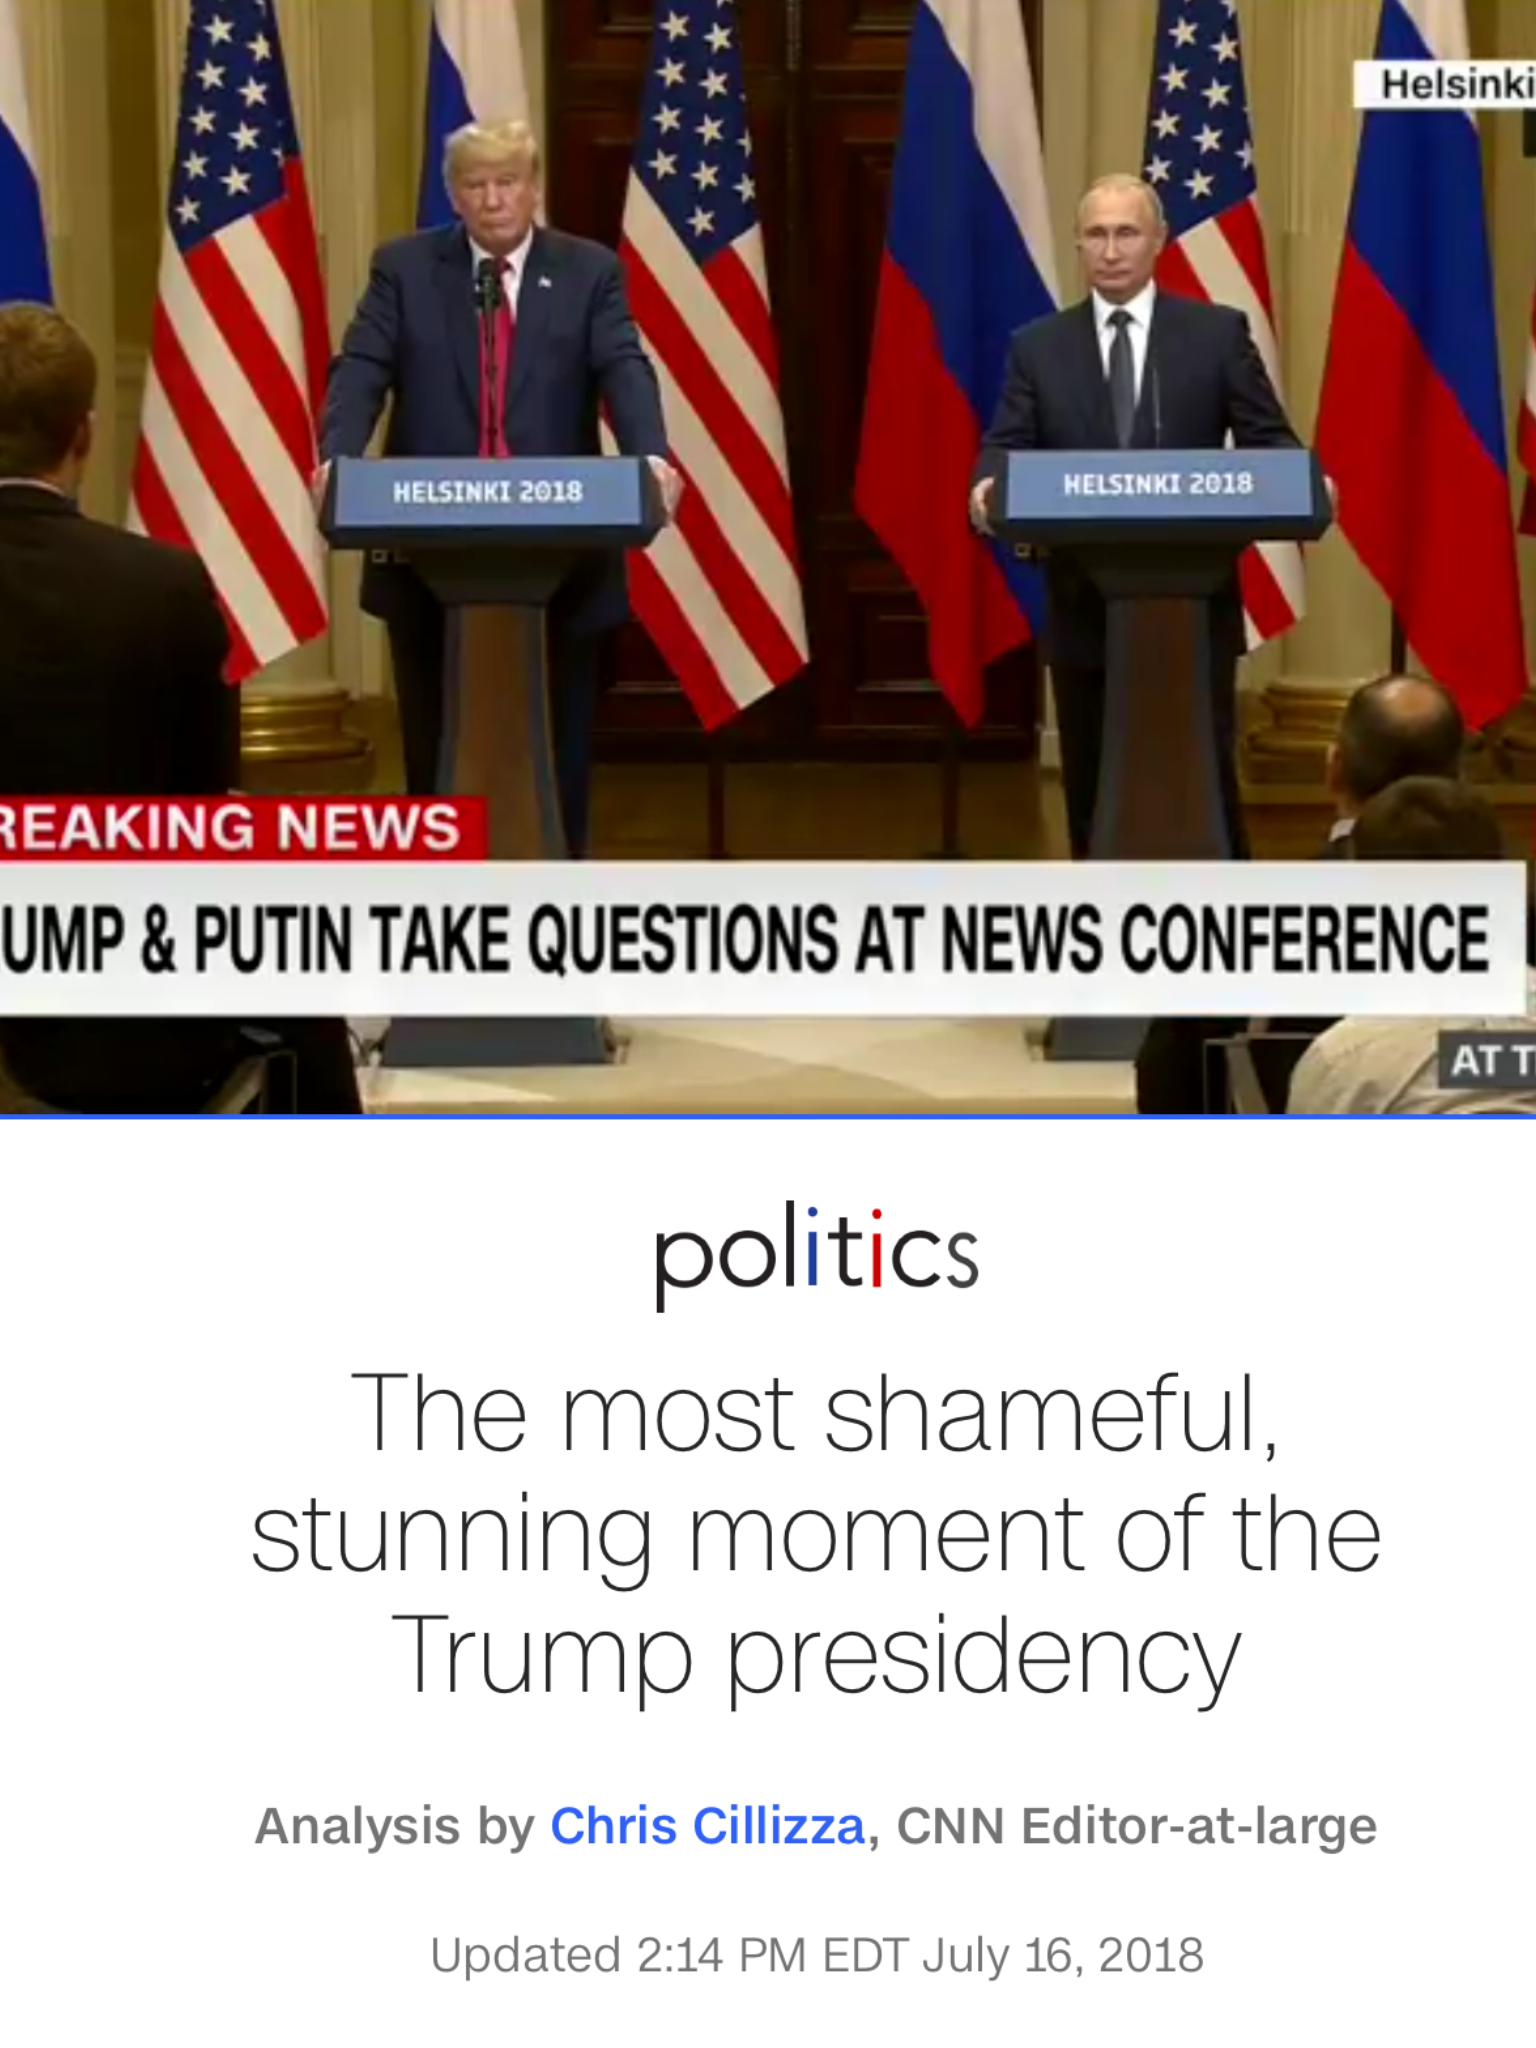 The Shameful Thing Is That He And Putin Stole The